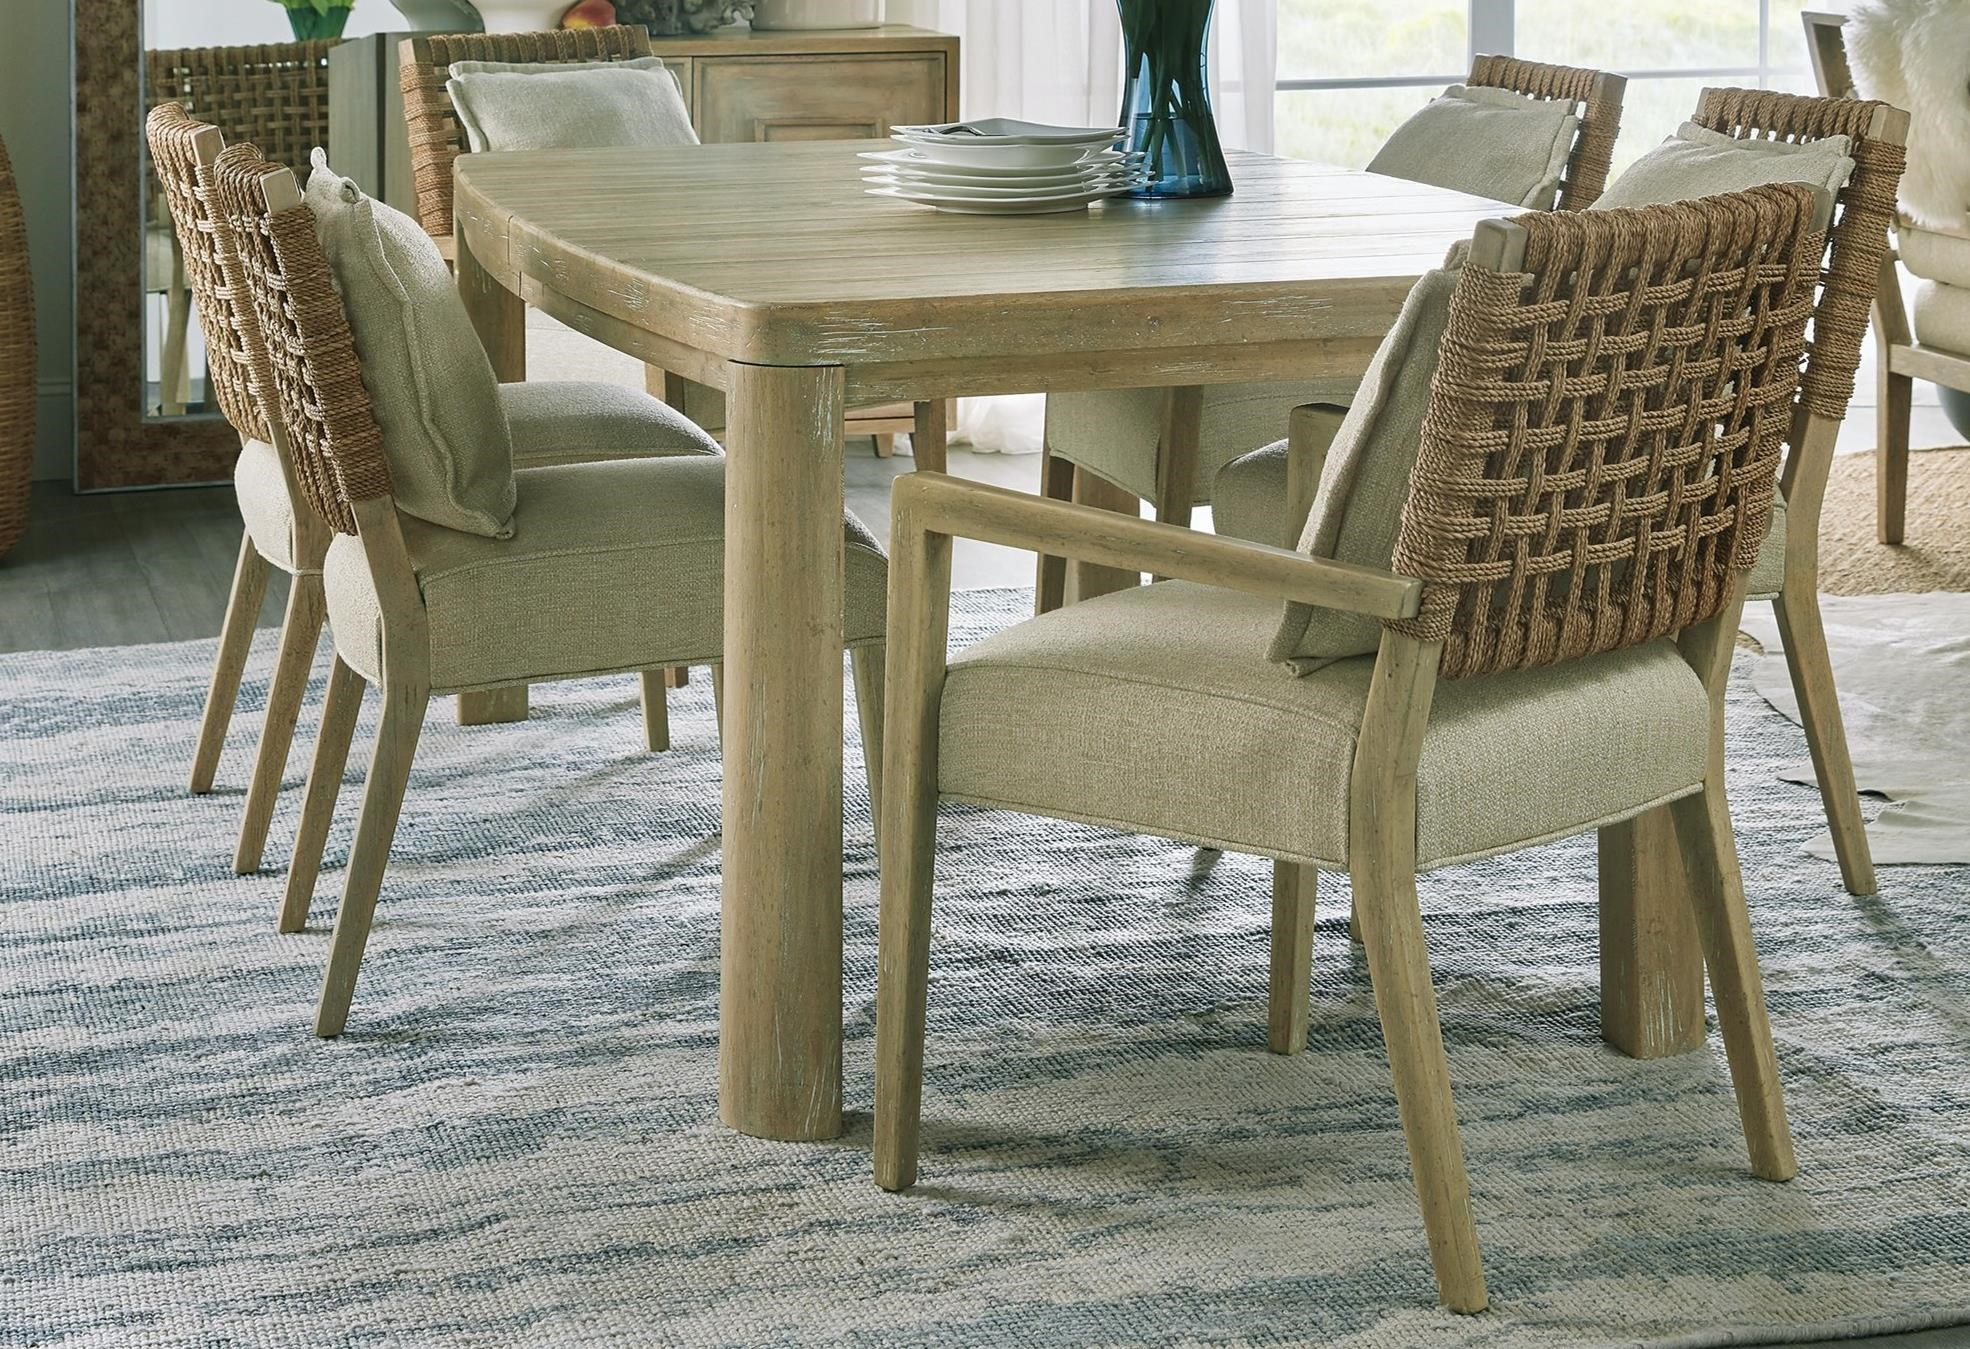 Surfrider 7-Piece Table and Chair Set by Hooker Furniture at Adcock Furniture